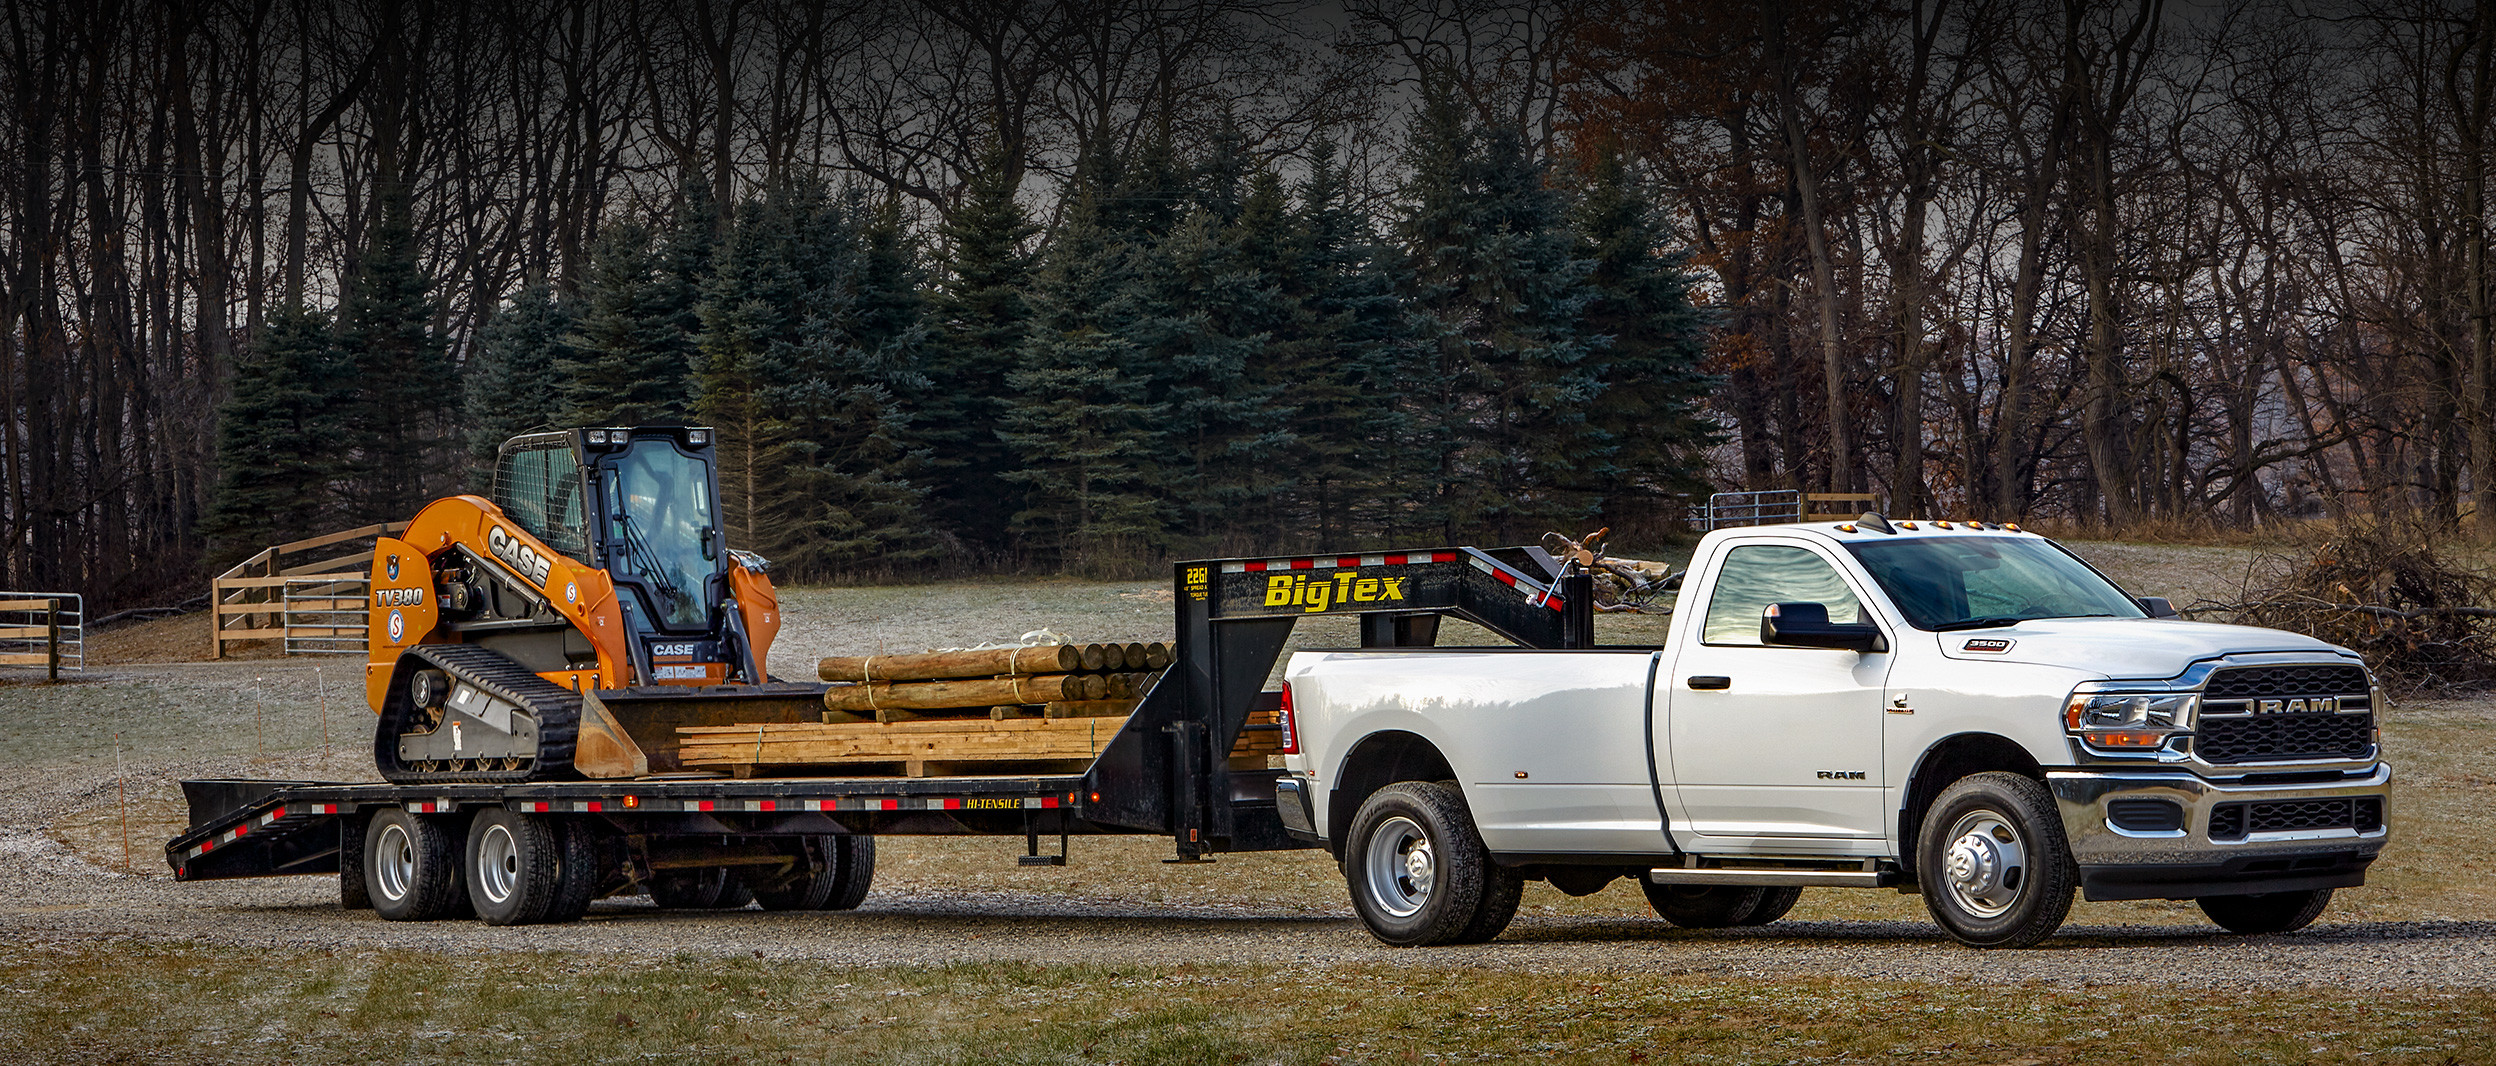 White 2020 Ram 3500 hauling a black trailer carrying wood and a skid steer loader.